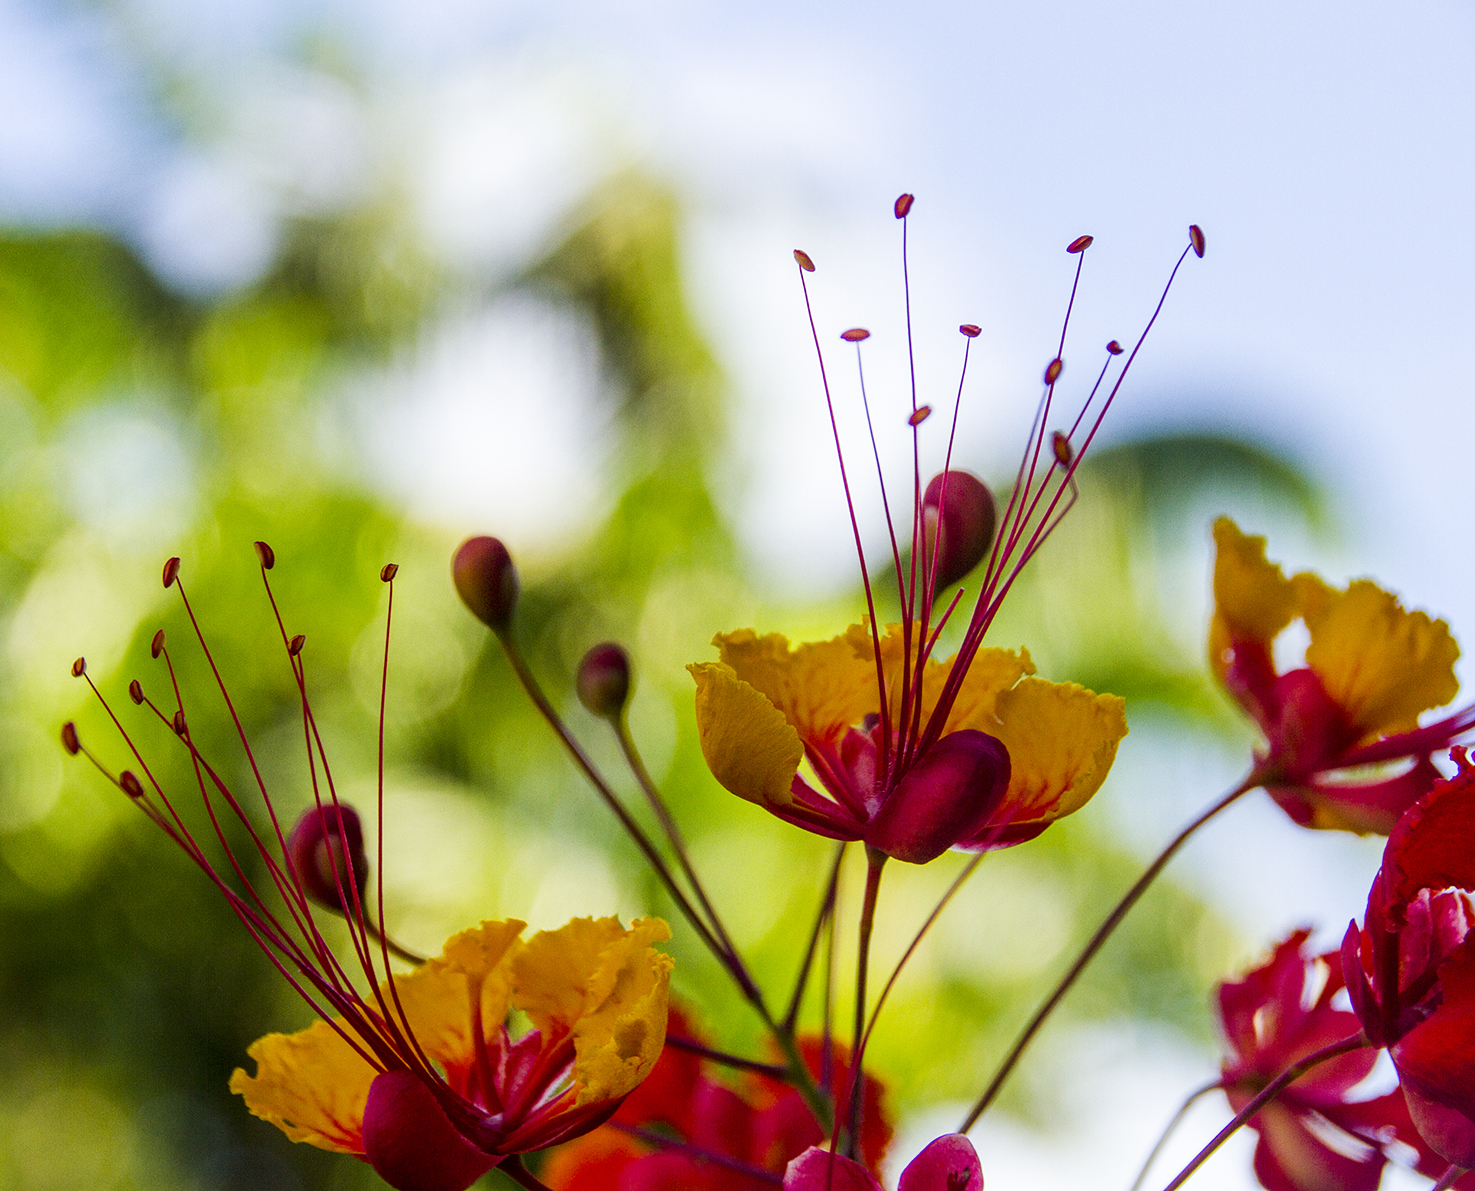 The flowers of the Flamboyan